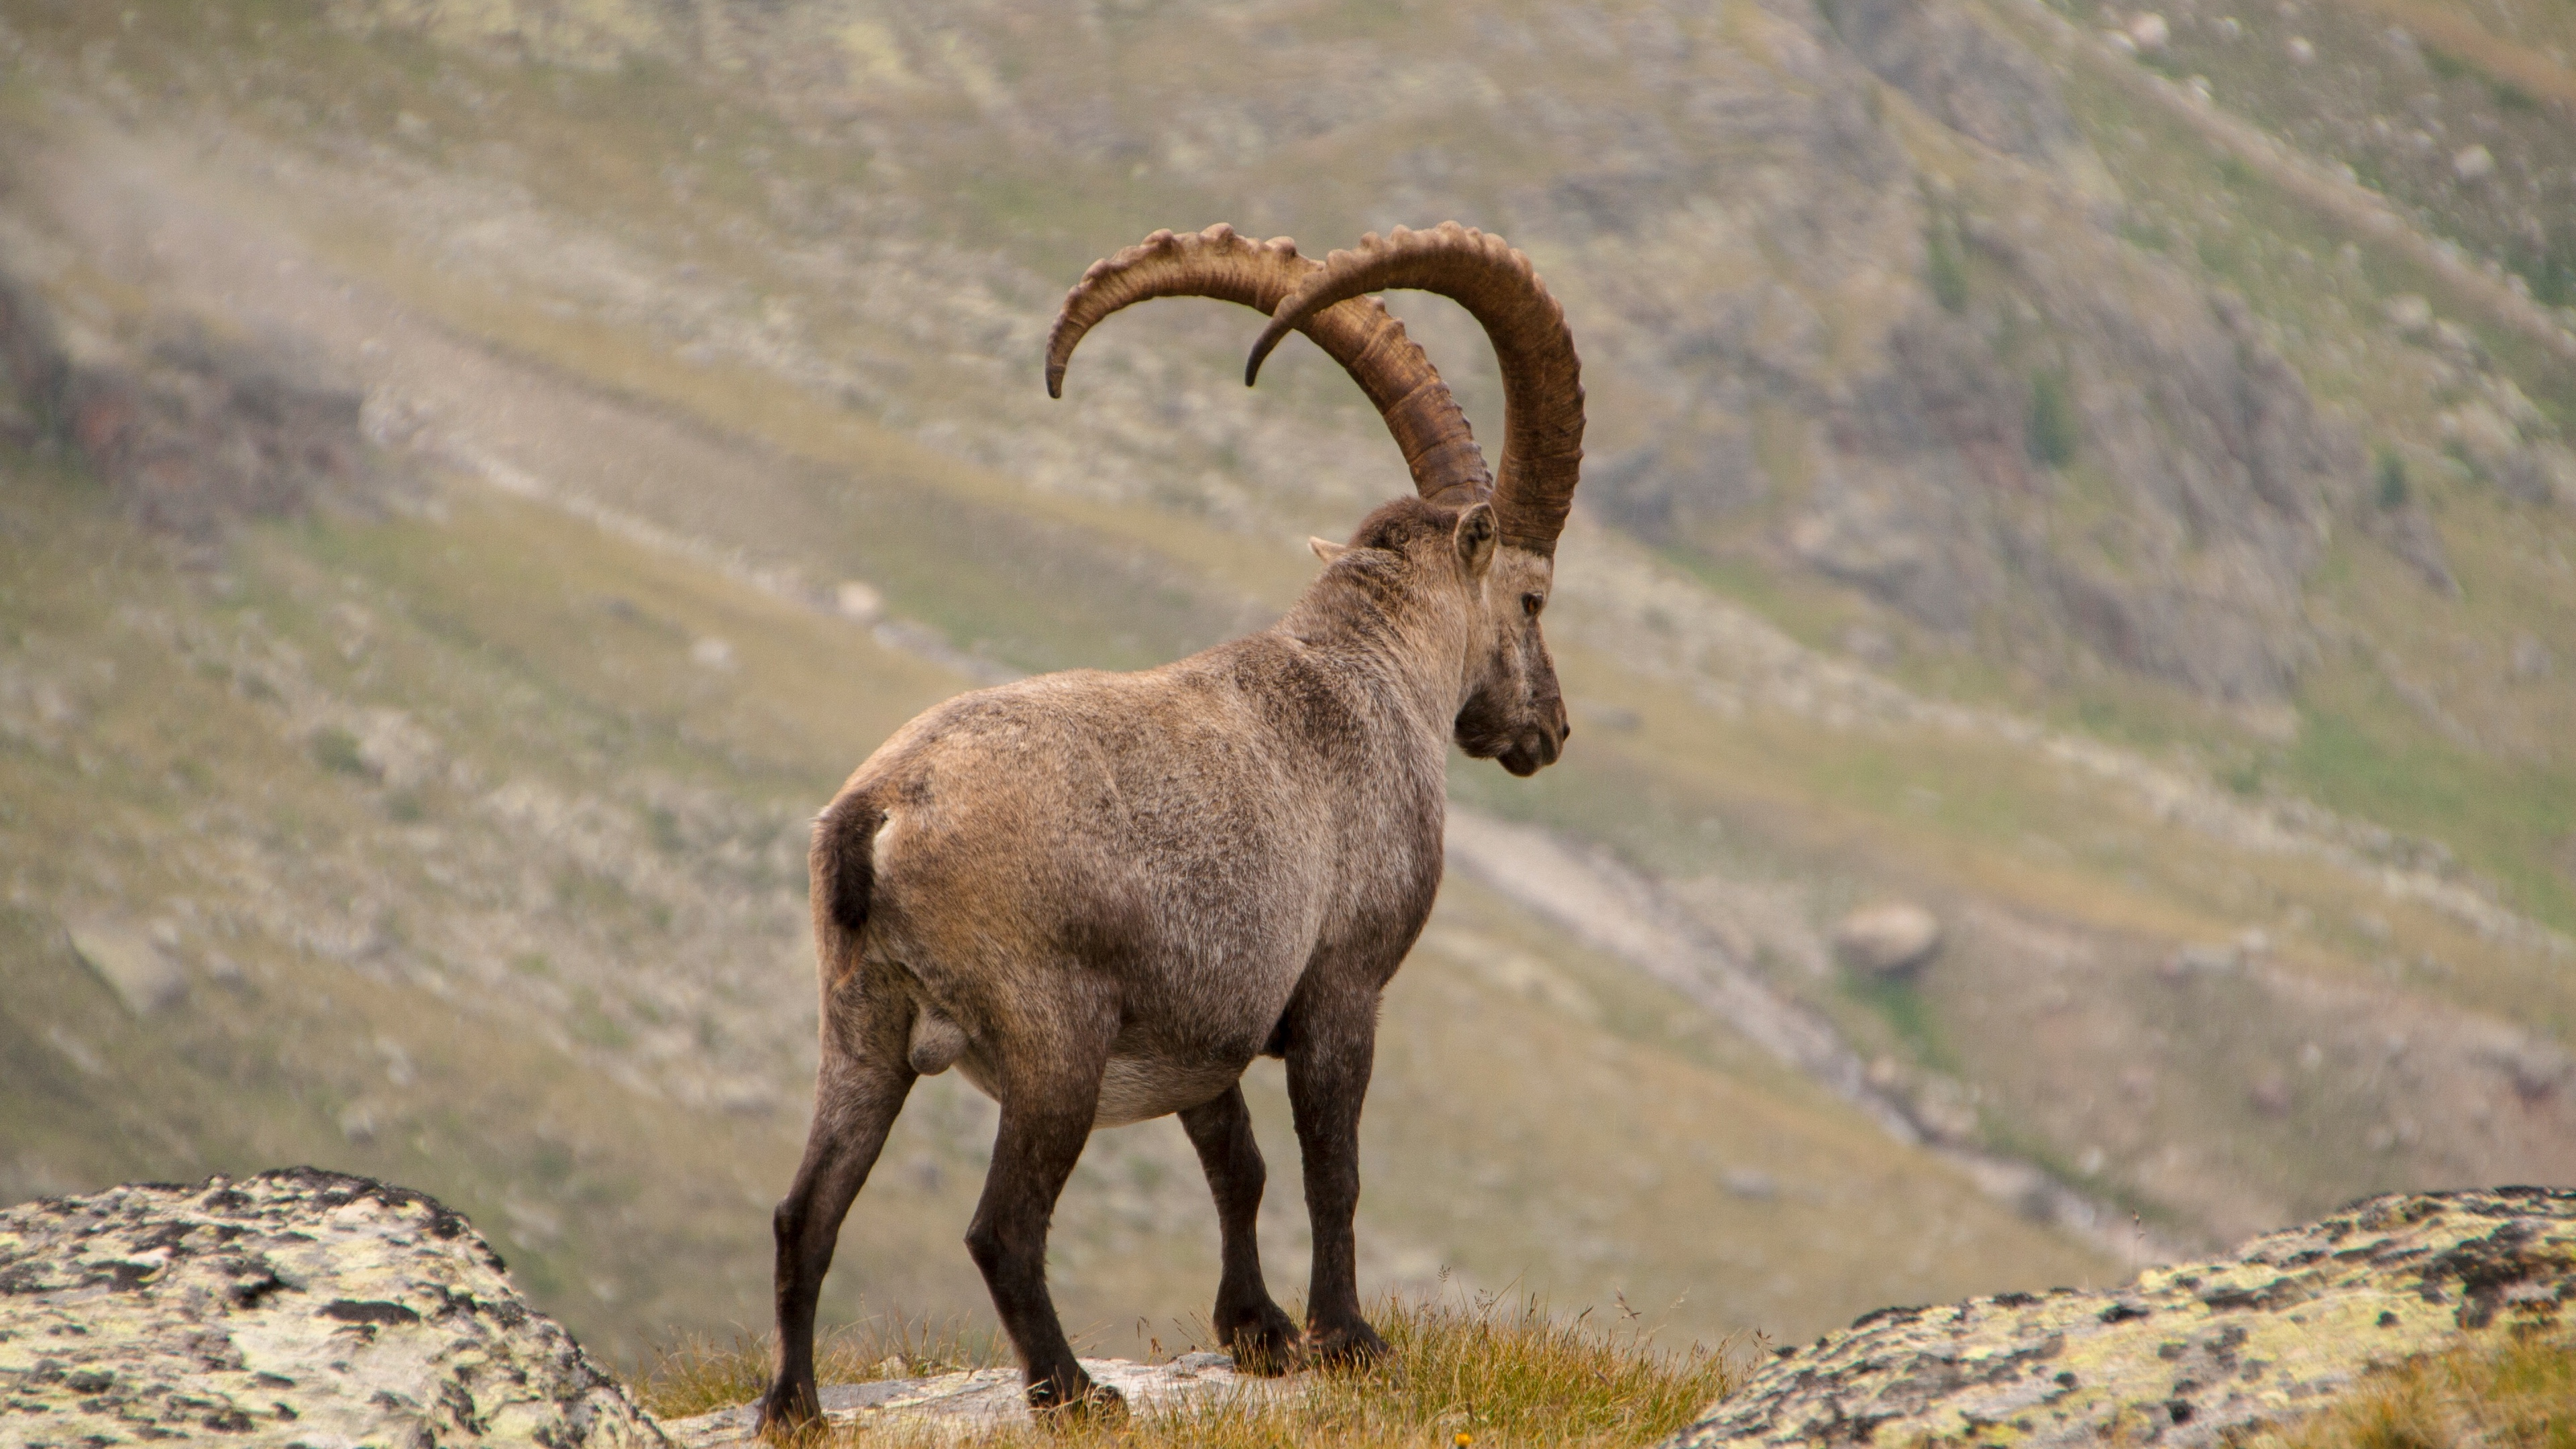 alpine ibex goat mountains horns 4k 1542242617 - alpine ibex, goat, mountains, horns 4k - Mountains, goat, alpine ibex